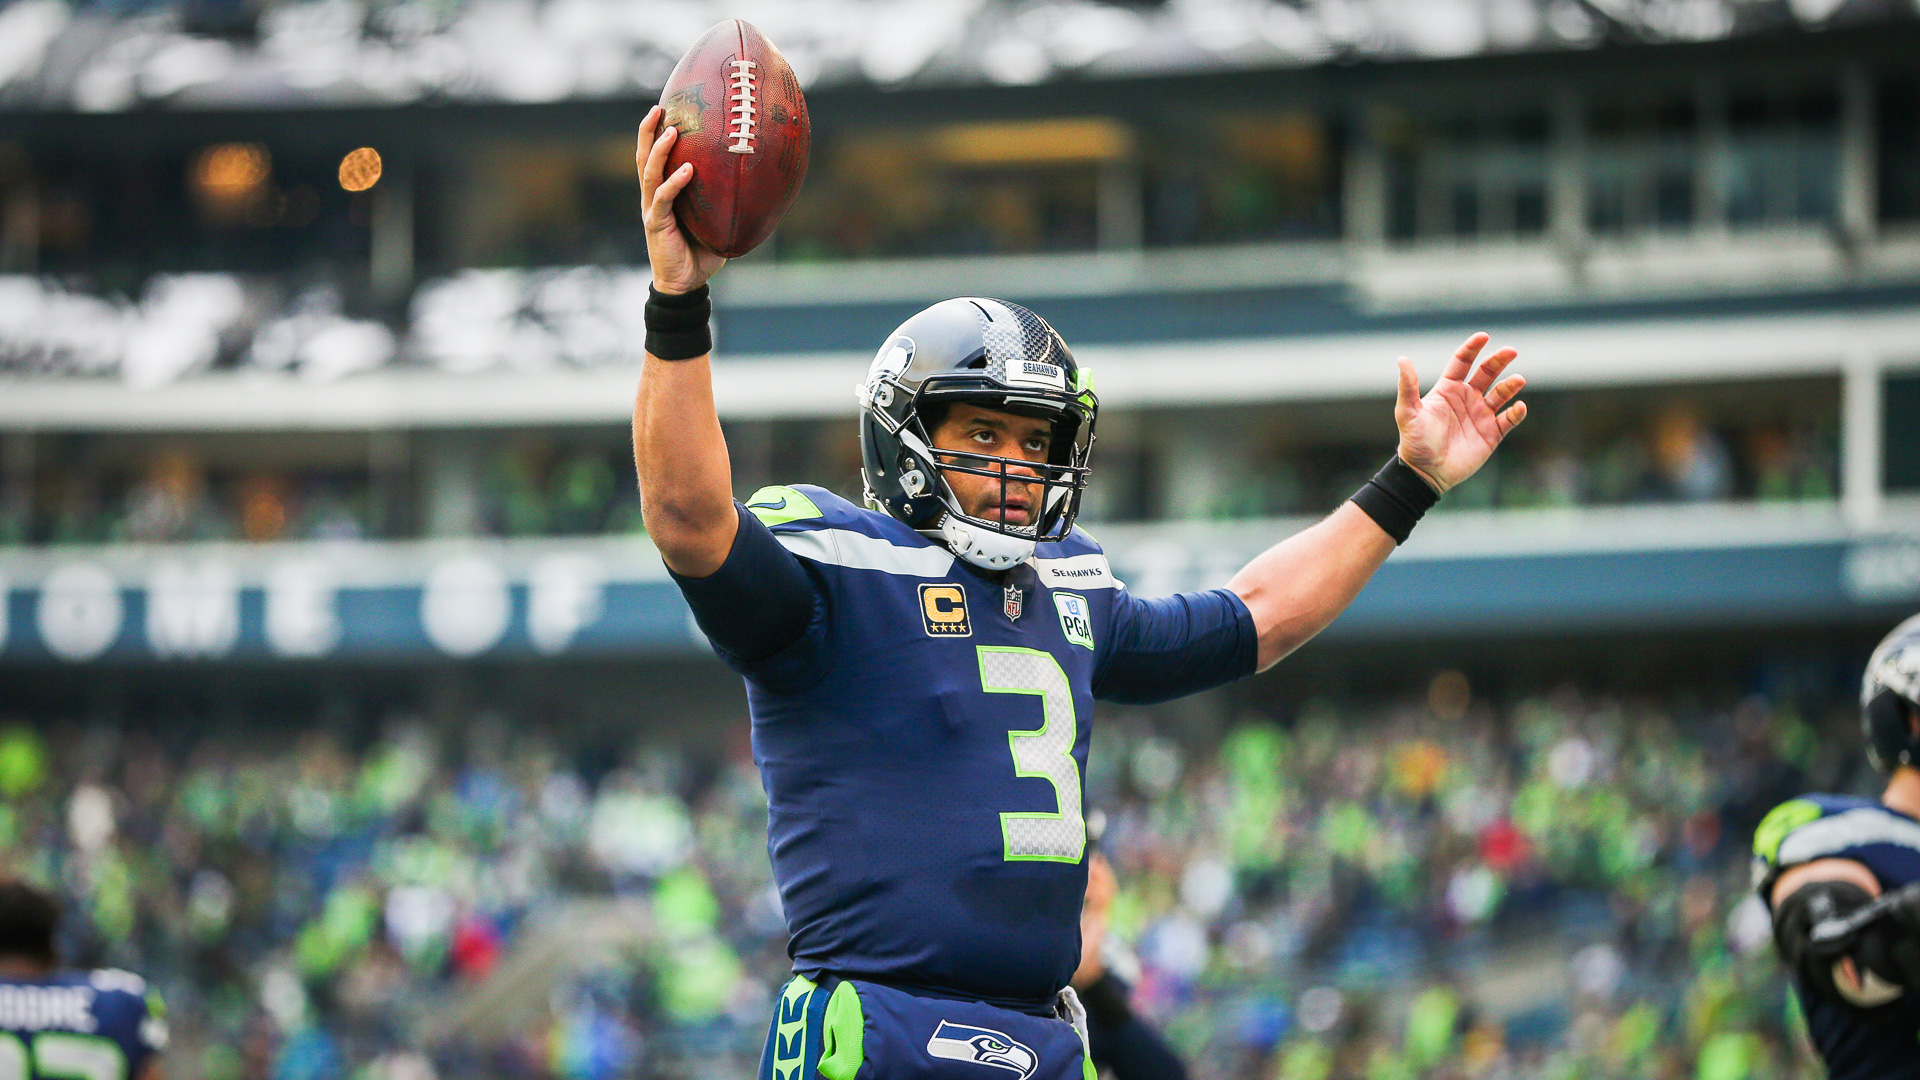 ae3278573fd2 Russell-Wilson-gives-Amazon -stock-to-Seattle-Seahawks-team-shutterstock editorial 10043733ay huge.jpg